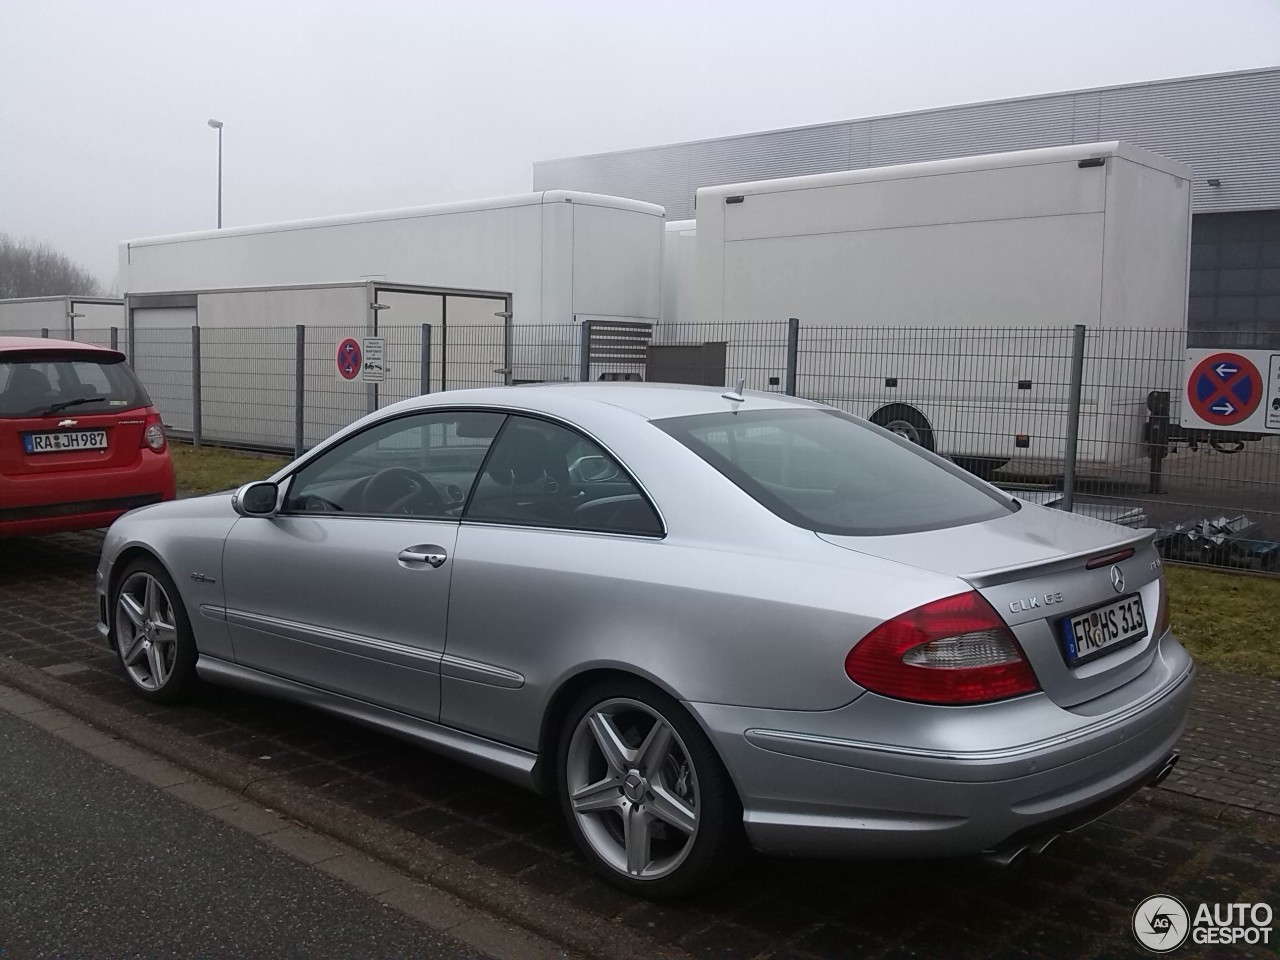 Mercedes benz clk 63 amg 12 february 2015 autogespot for Mercedes benz clk 63 amg